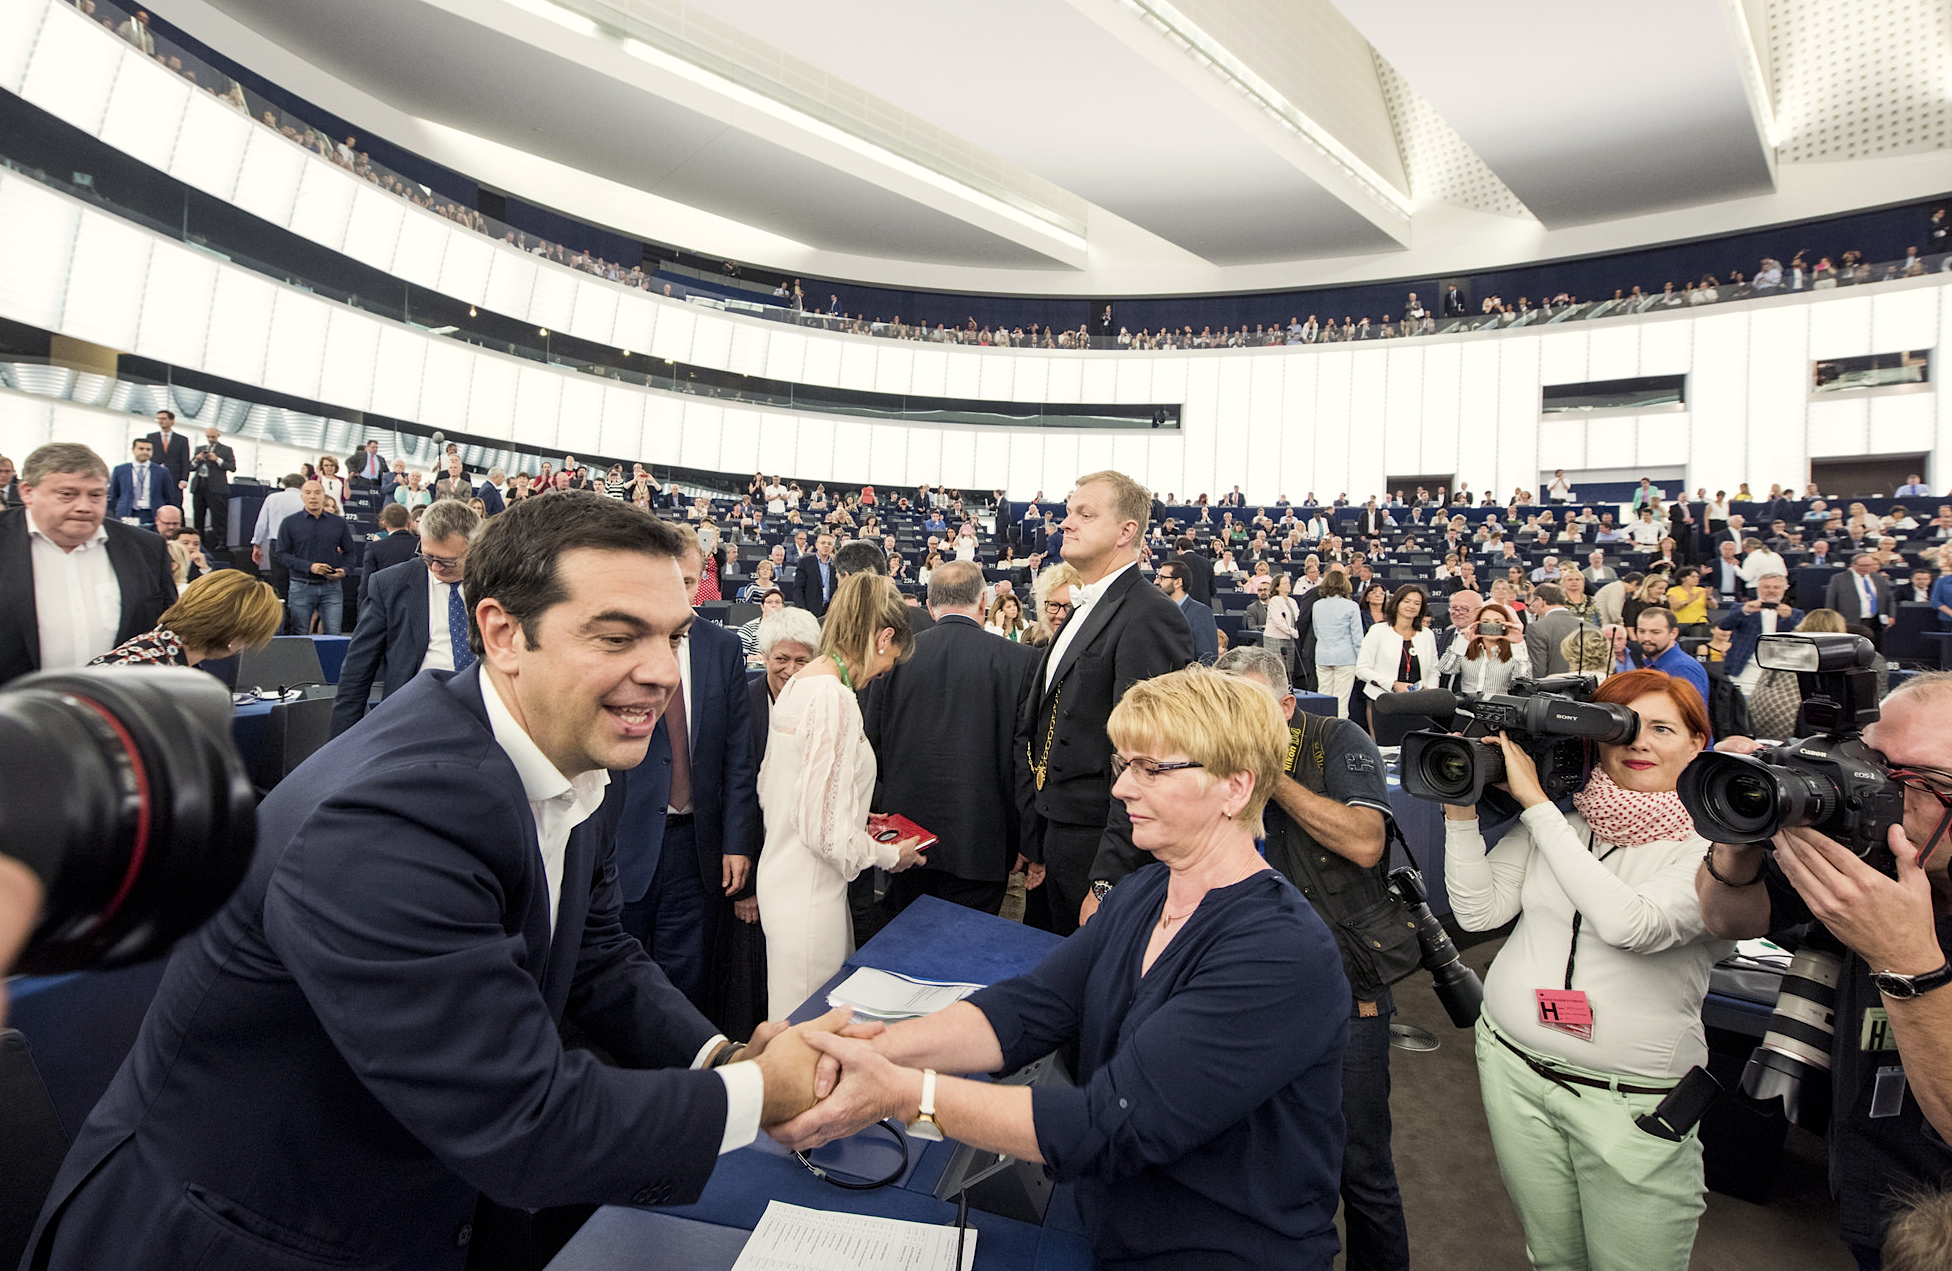 MEPs berate Greek PM in lively debate